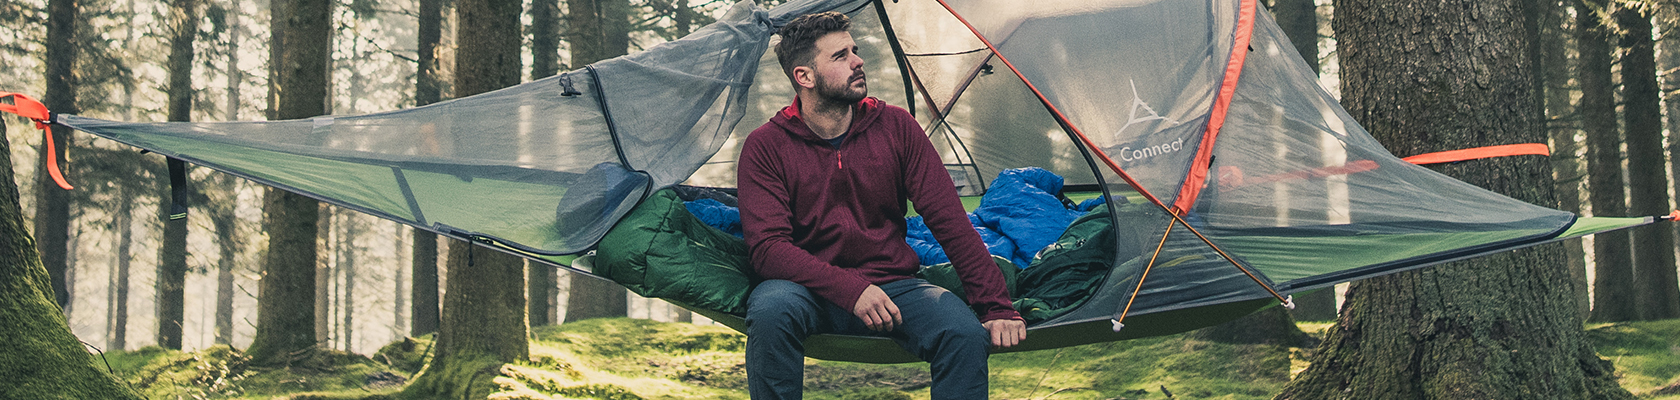 Two people sat drinking from a mug outside of a tent.